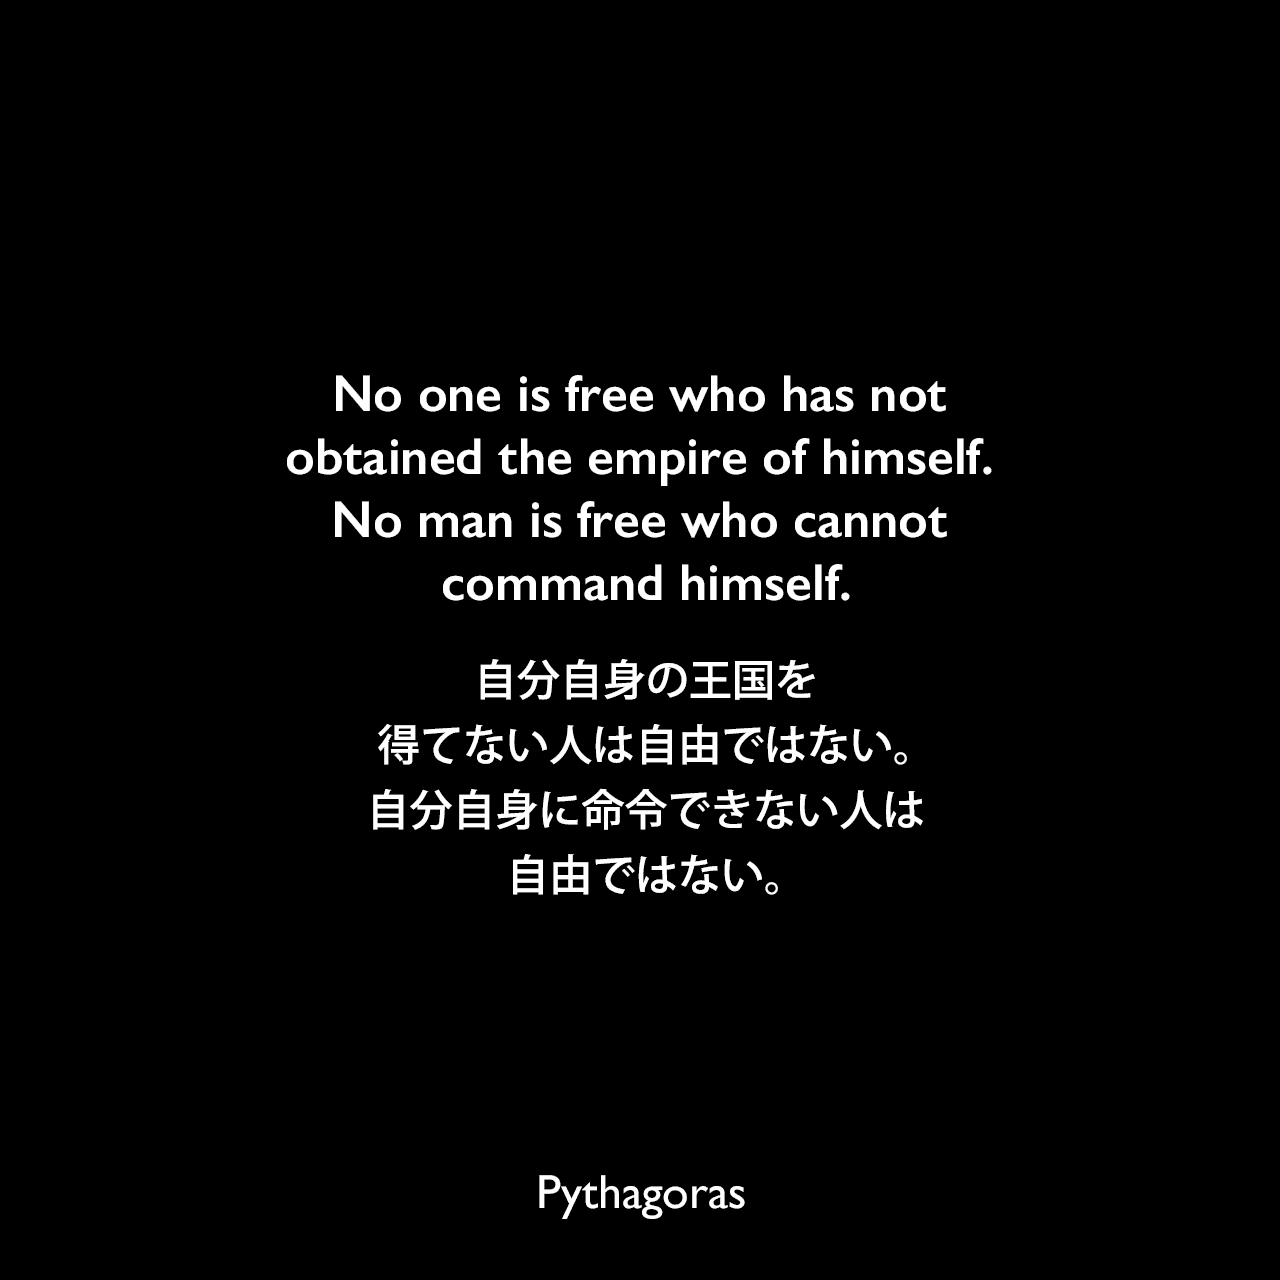 No one is free who has not obtained the empire of himself. No man is free who cannot command himself.自分自身の王国を得てない人は自由ではない。自分自身に命令できない人は自由ではない。- Charles Varleの本「Moral Encyclopaedia」よりPythagoras